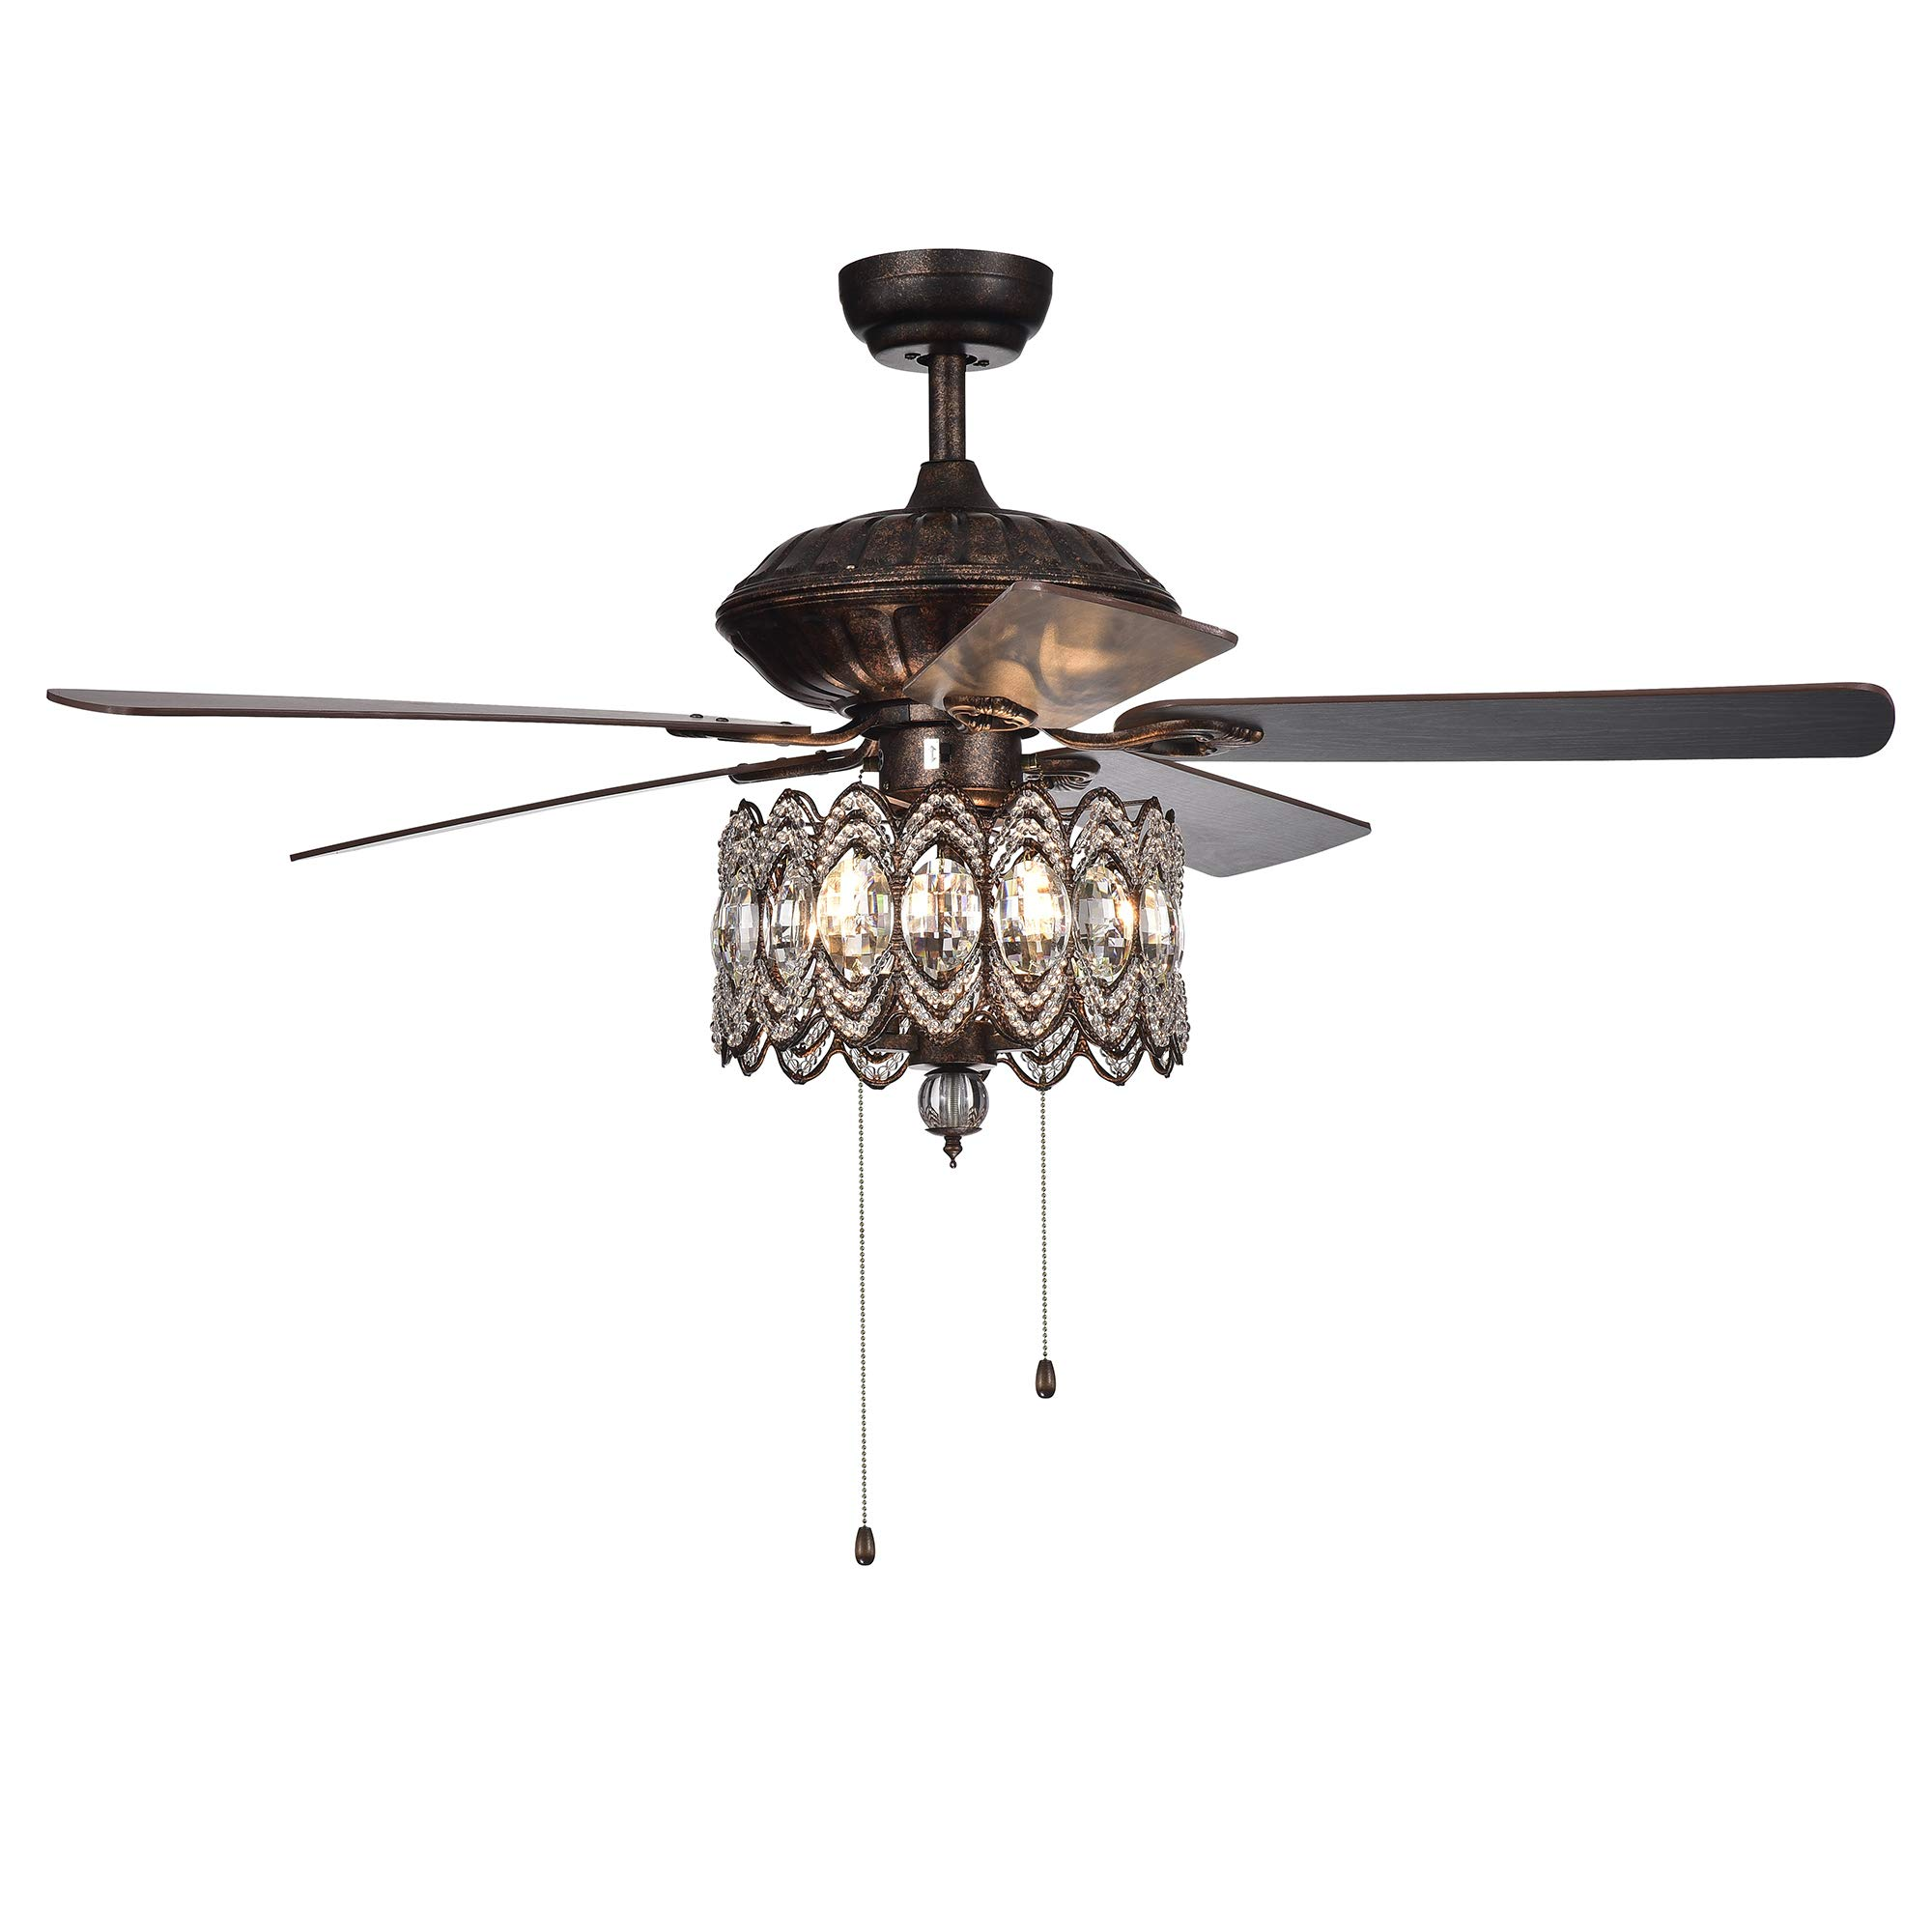 Warehouse of Tiffany CFL-8324RB Mariposa 52-inch Rustic Bronze Chandelier wtih Crystal Shade Ceiling Fan